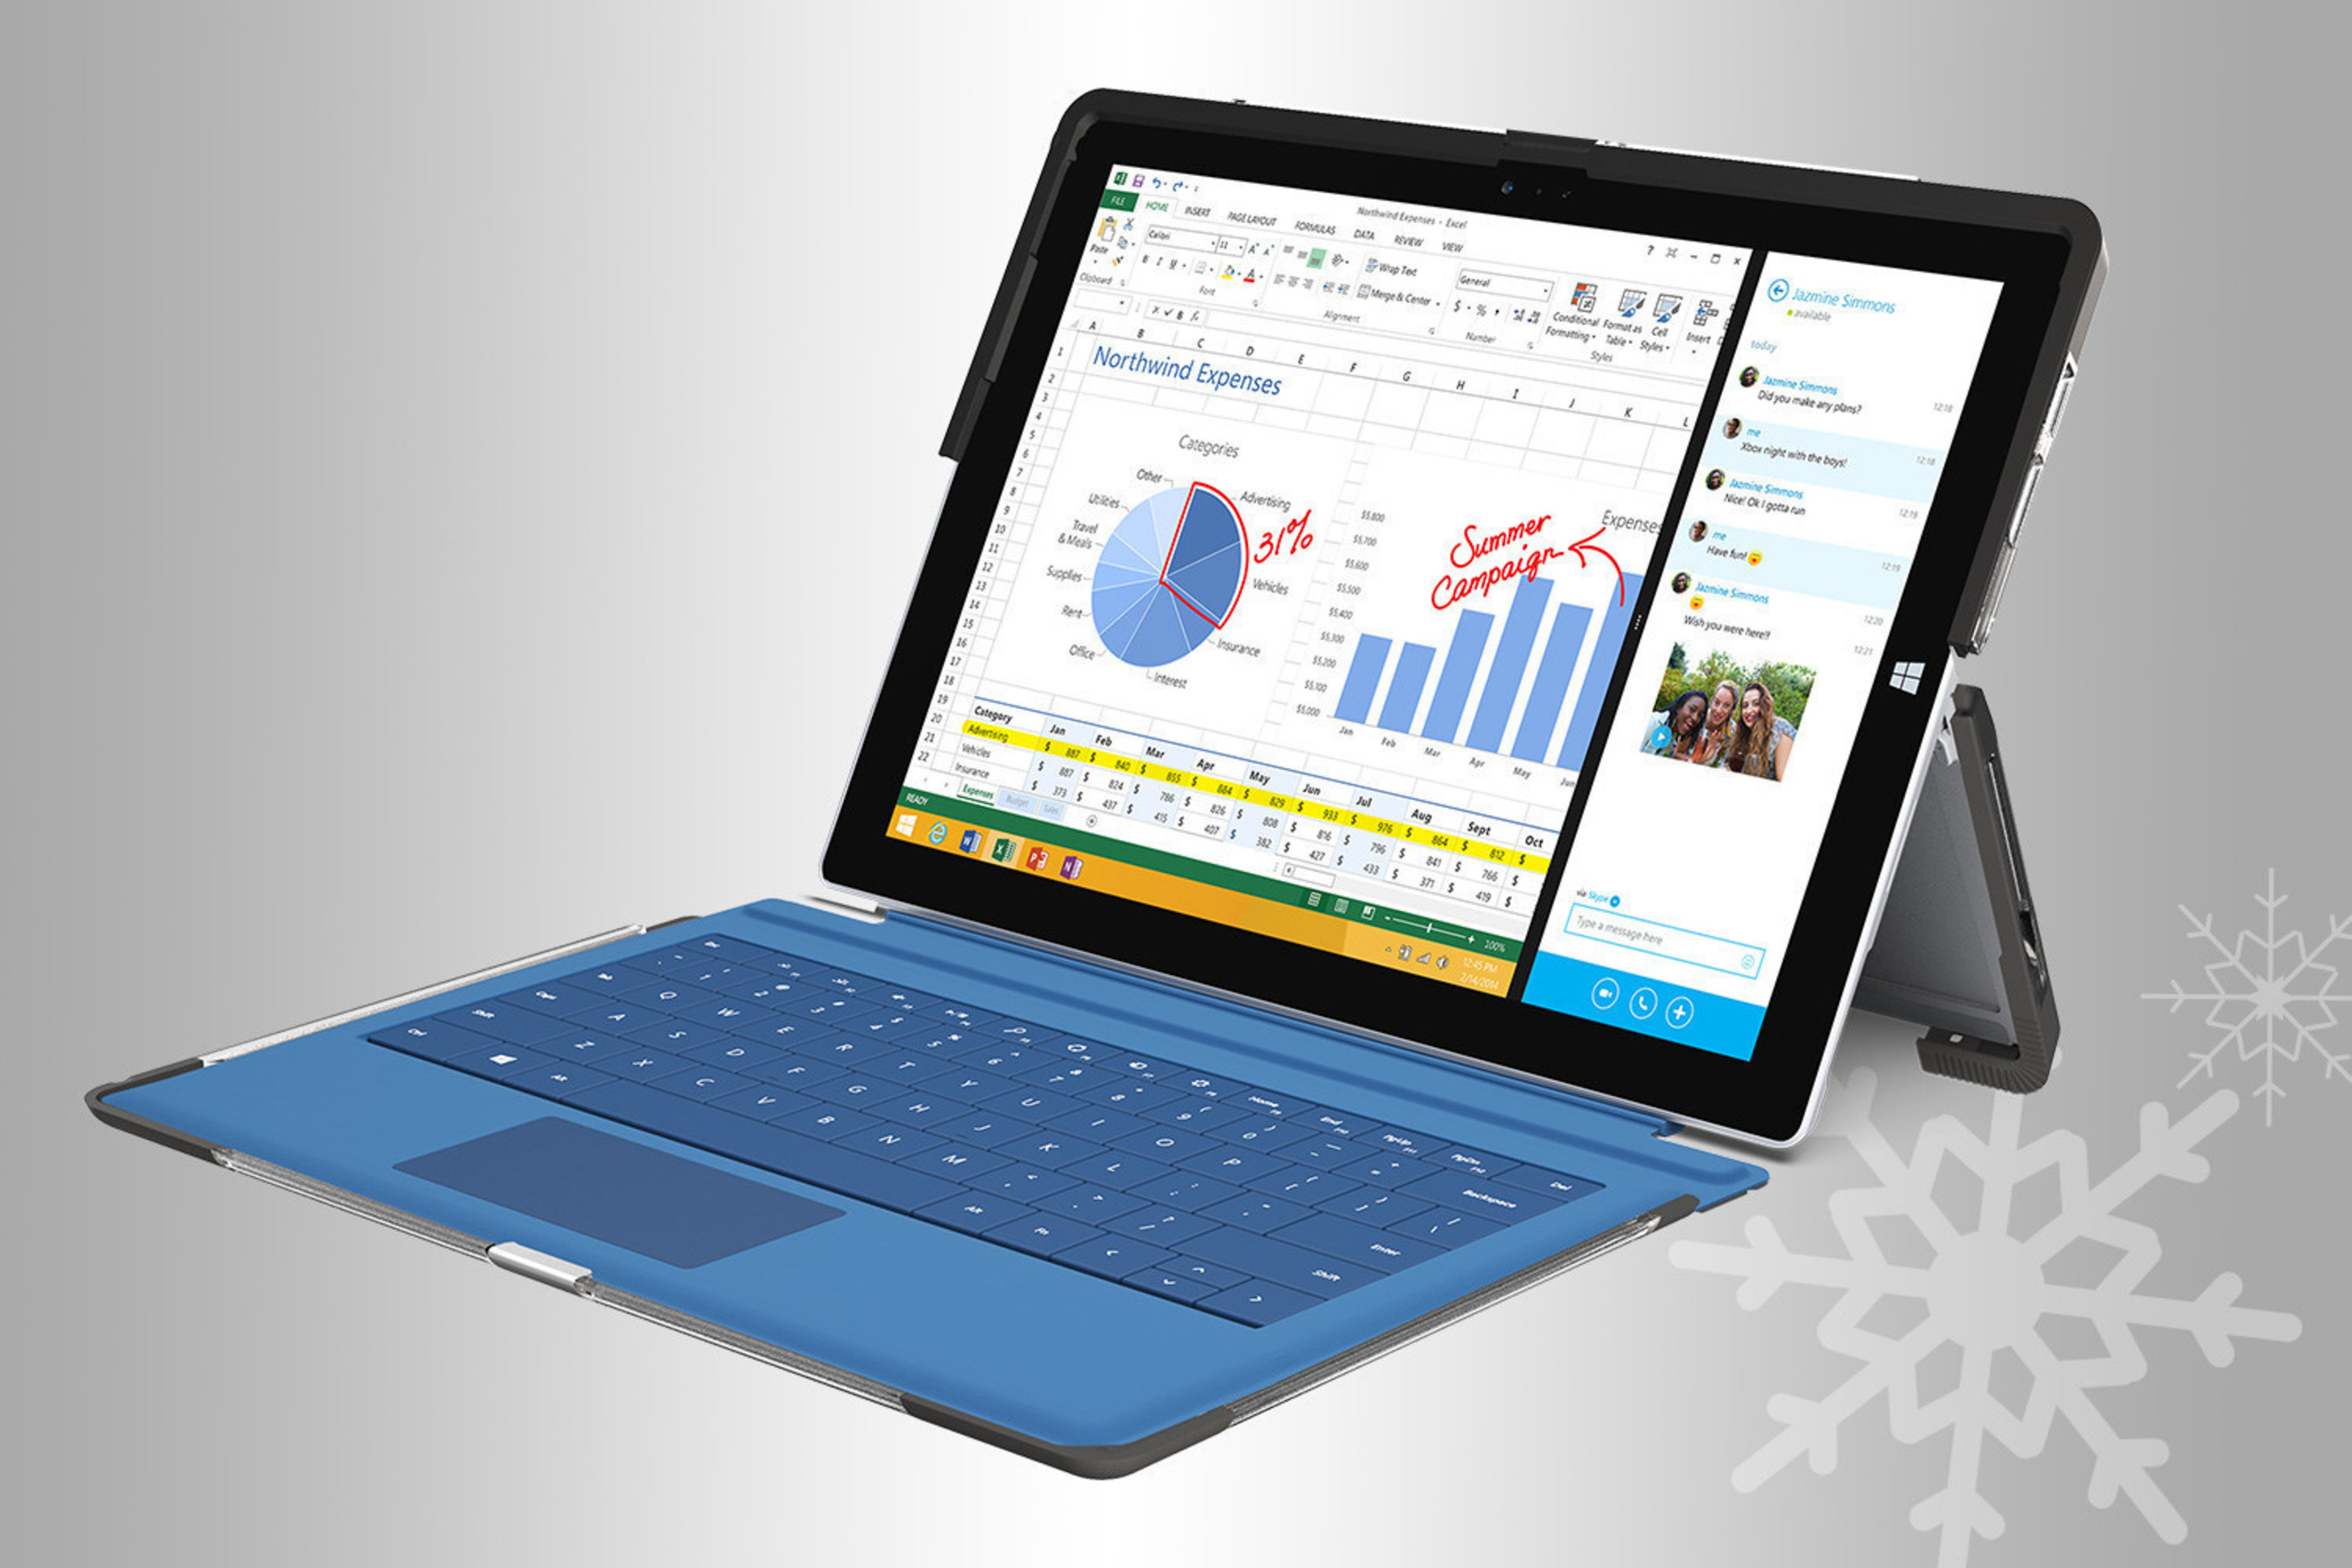 Microsoft tablet lovers can rejoice with Symmetry Series for Surface Pro 3 available now.